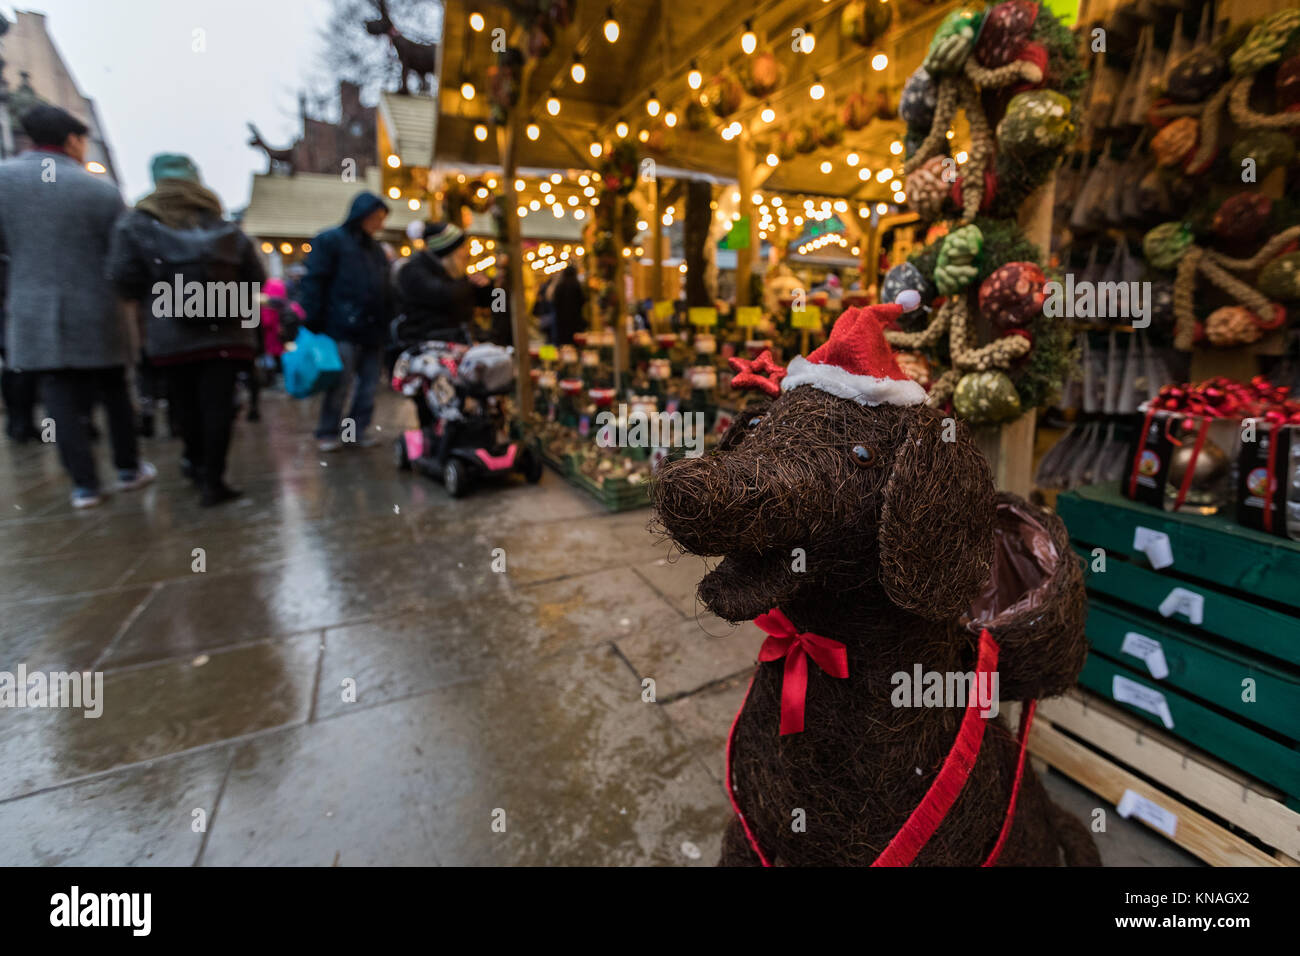 Shoppers And Revellers At Manchester Christmas Markets Around The City, Manchester, England, UK - Stock Image